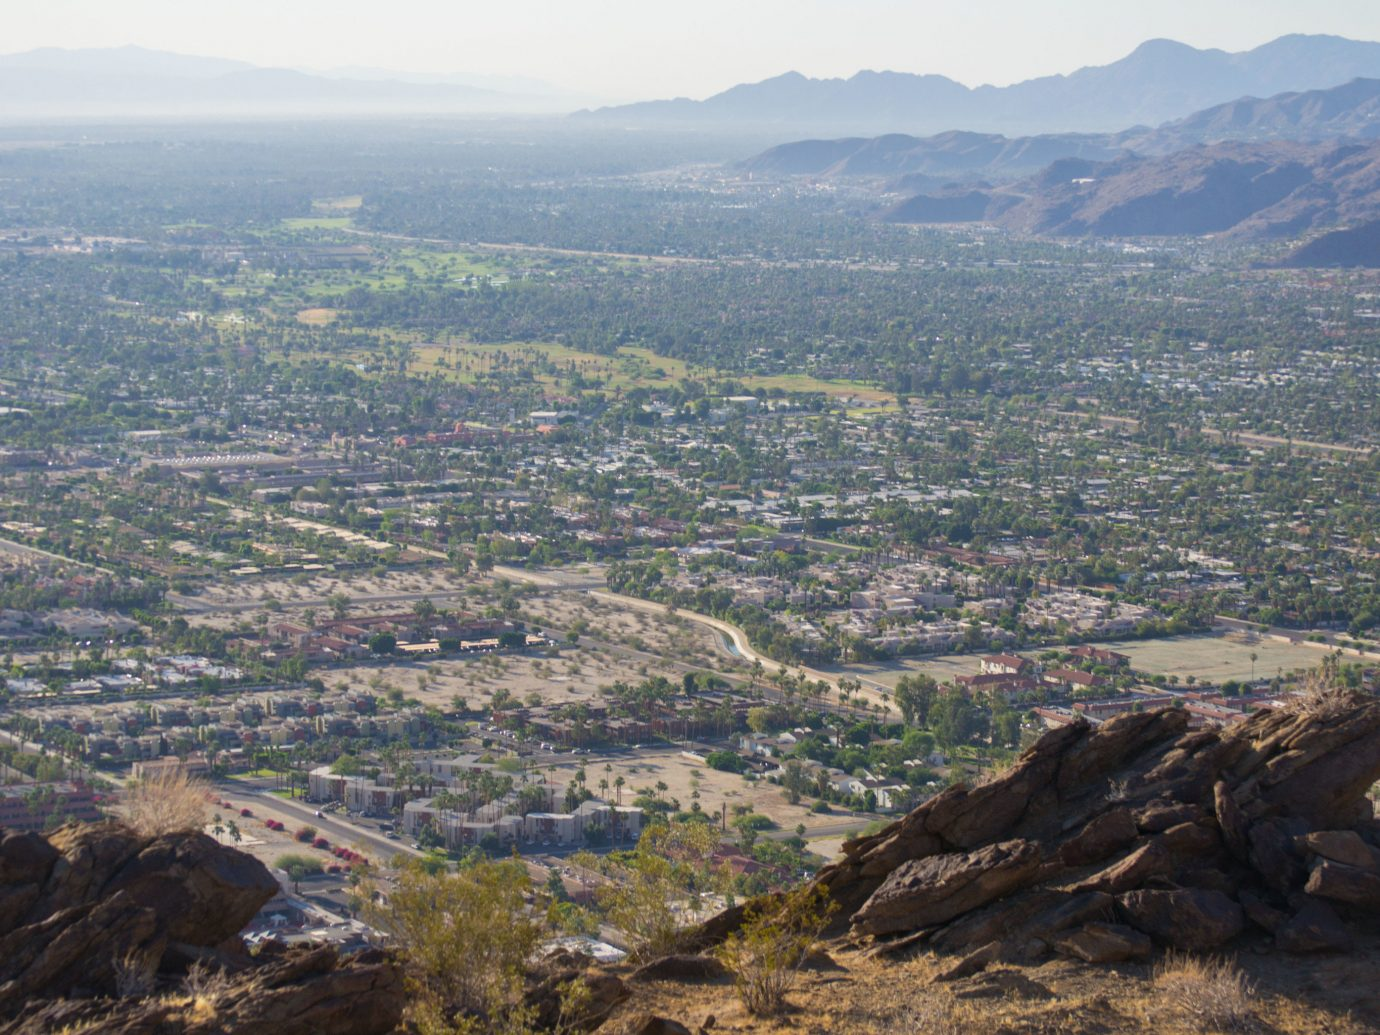 5 Must Hike Trails In The Coachella Valley